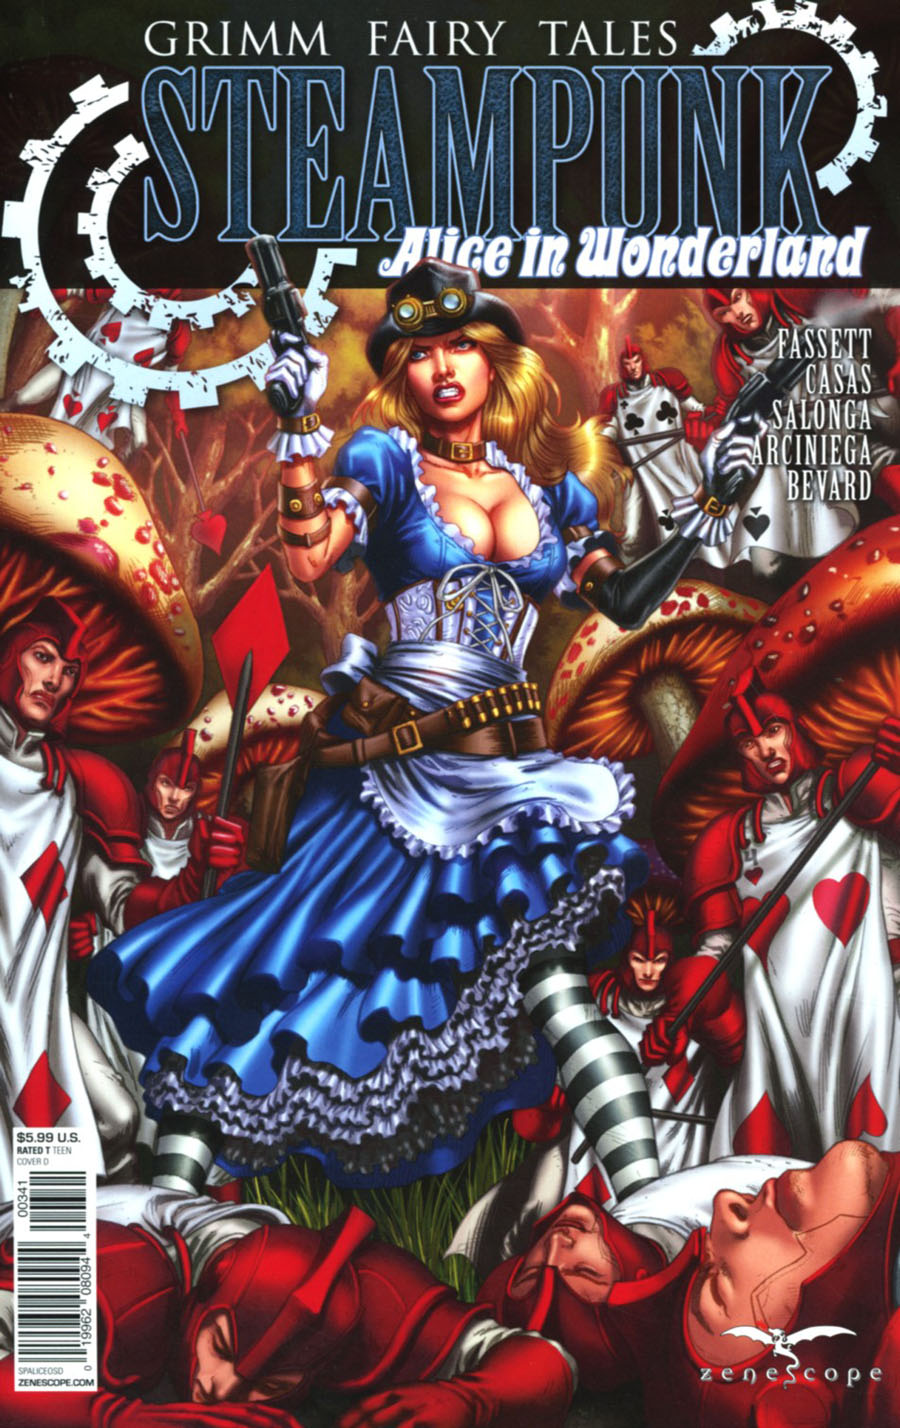 Grimm Fairy Tales Presents Steampunk Alice In Wonderland Cover D Jose Luis